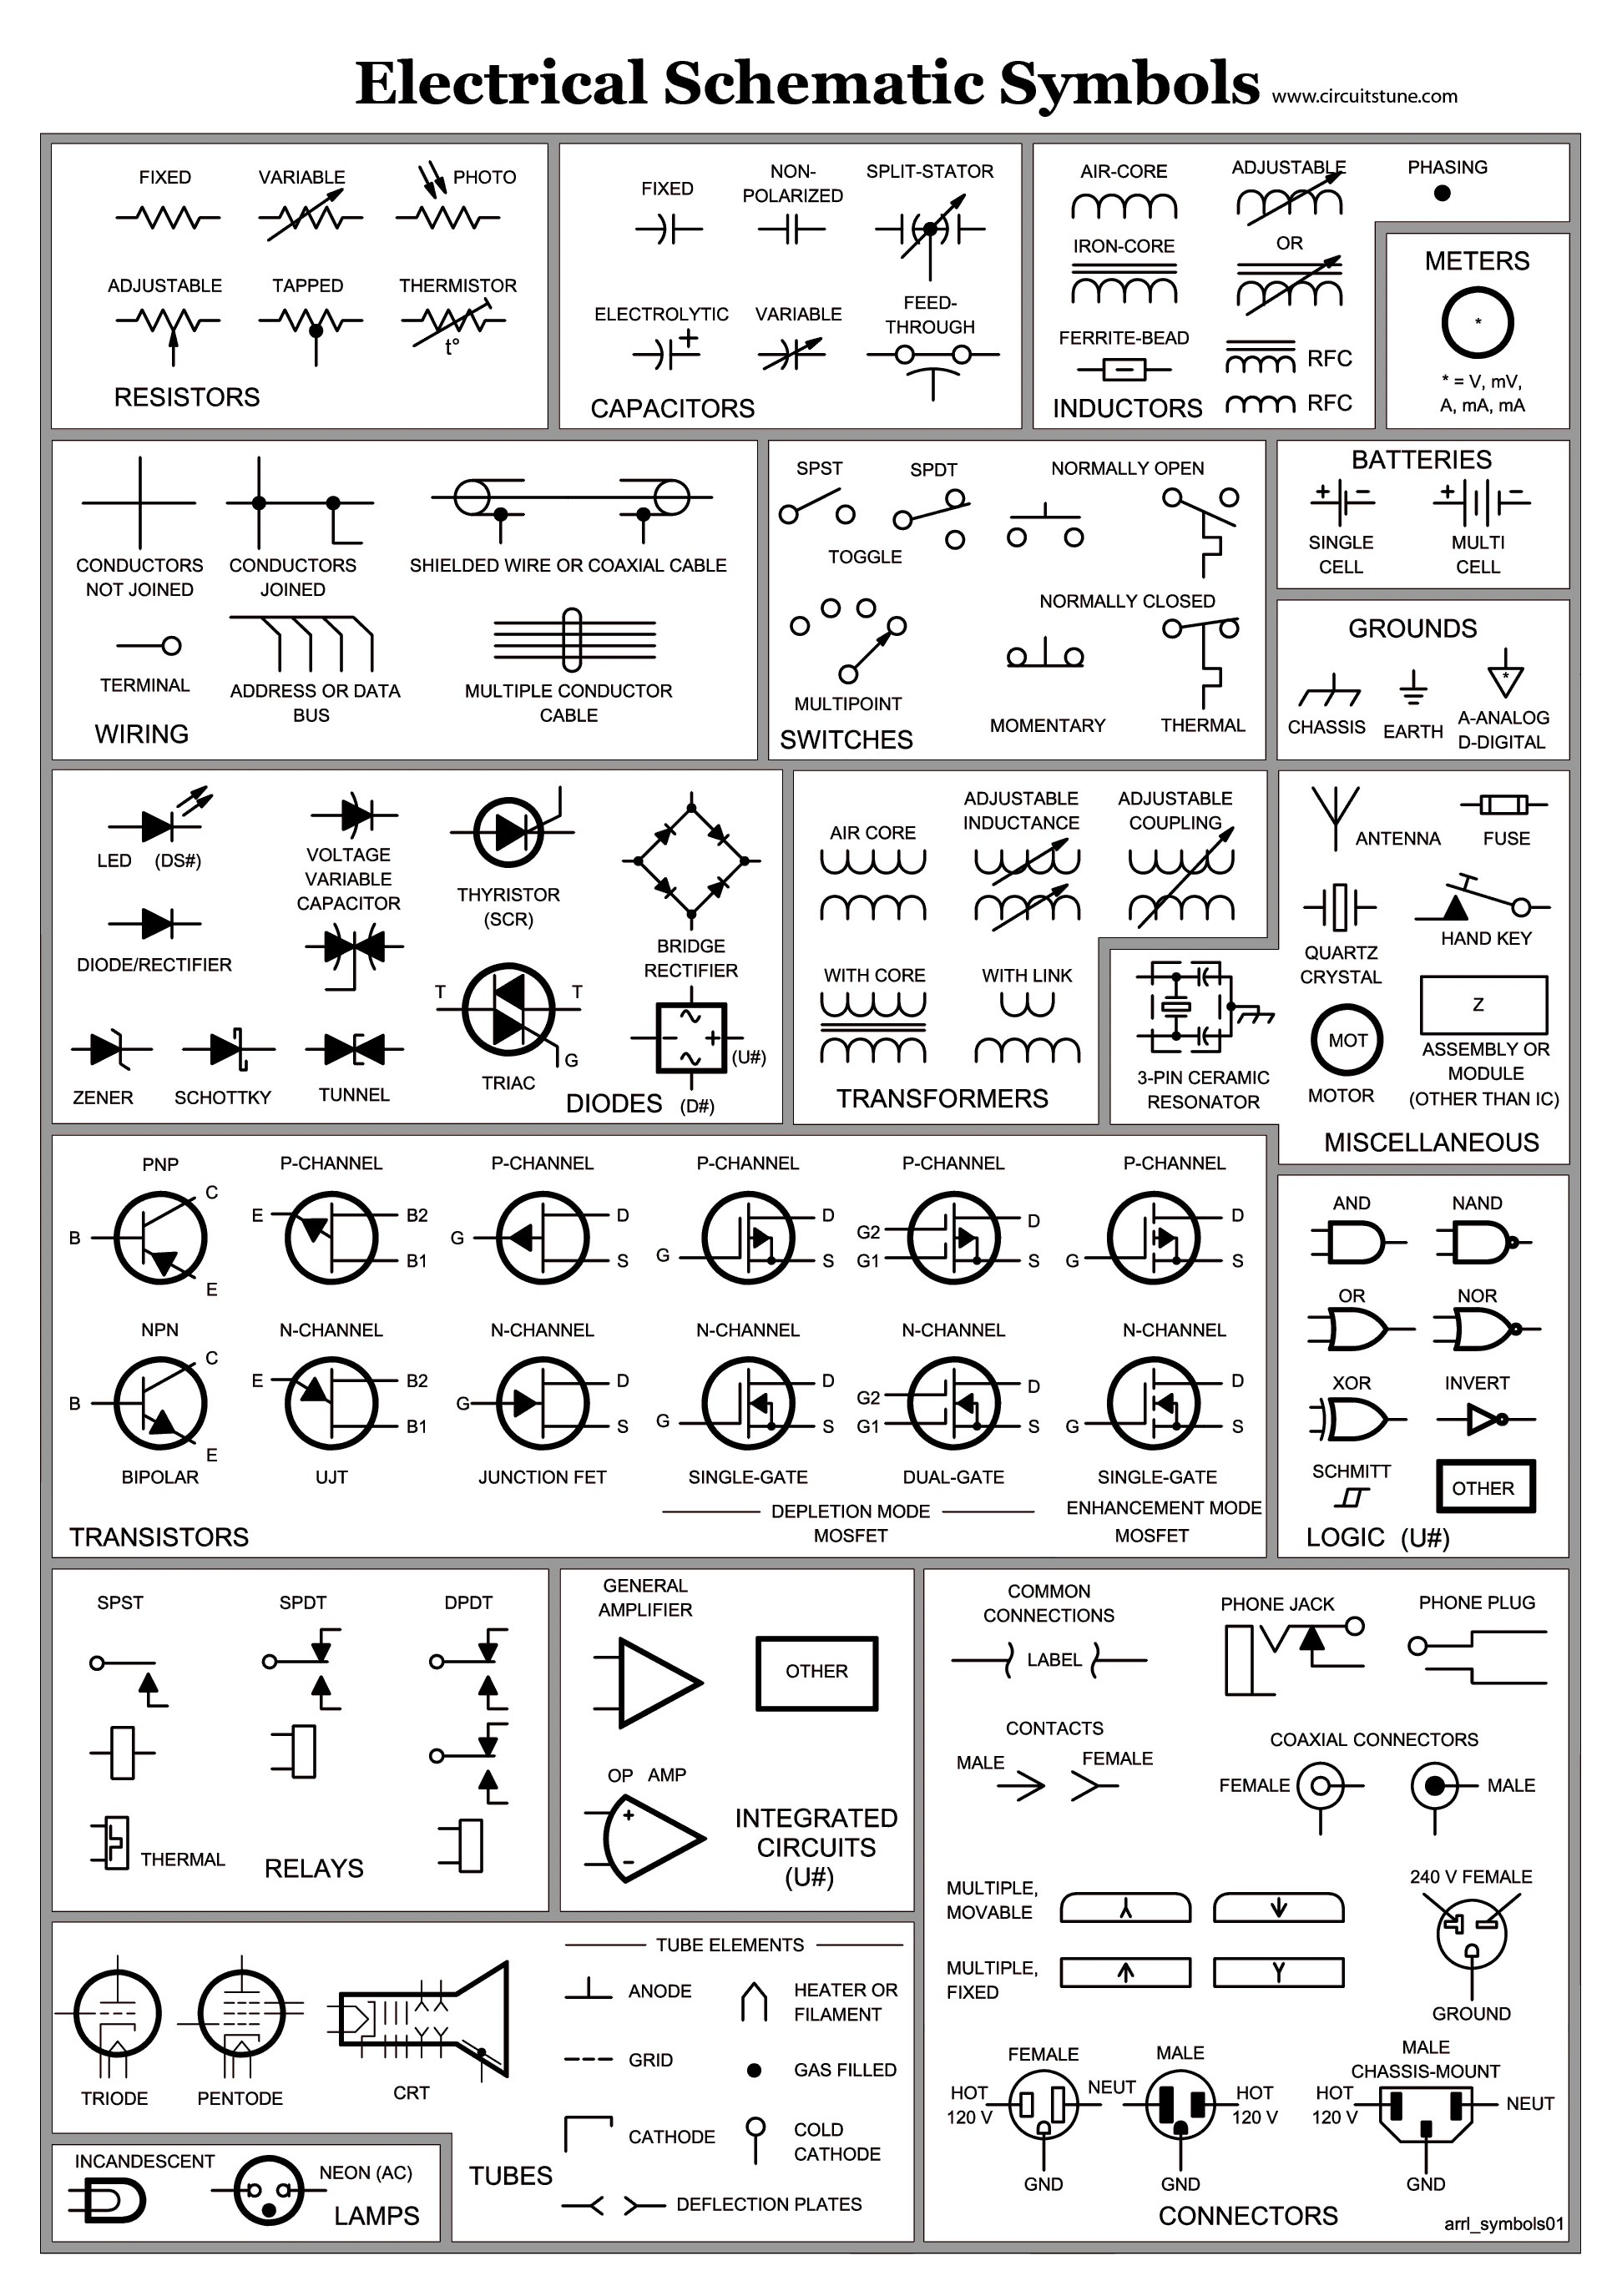 besides electronic schematics symbols circuits likewise electronic 6 pole wiring diagram electrical symbols [ 1937 x 2751 Pixel ]